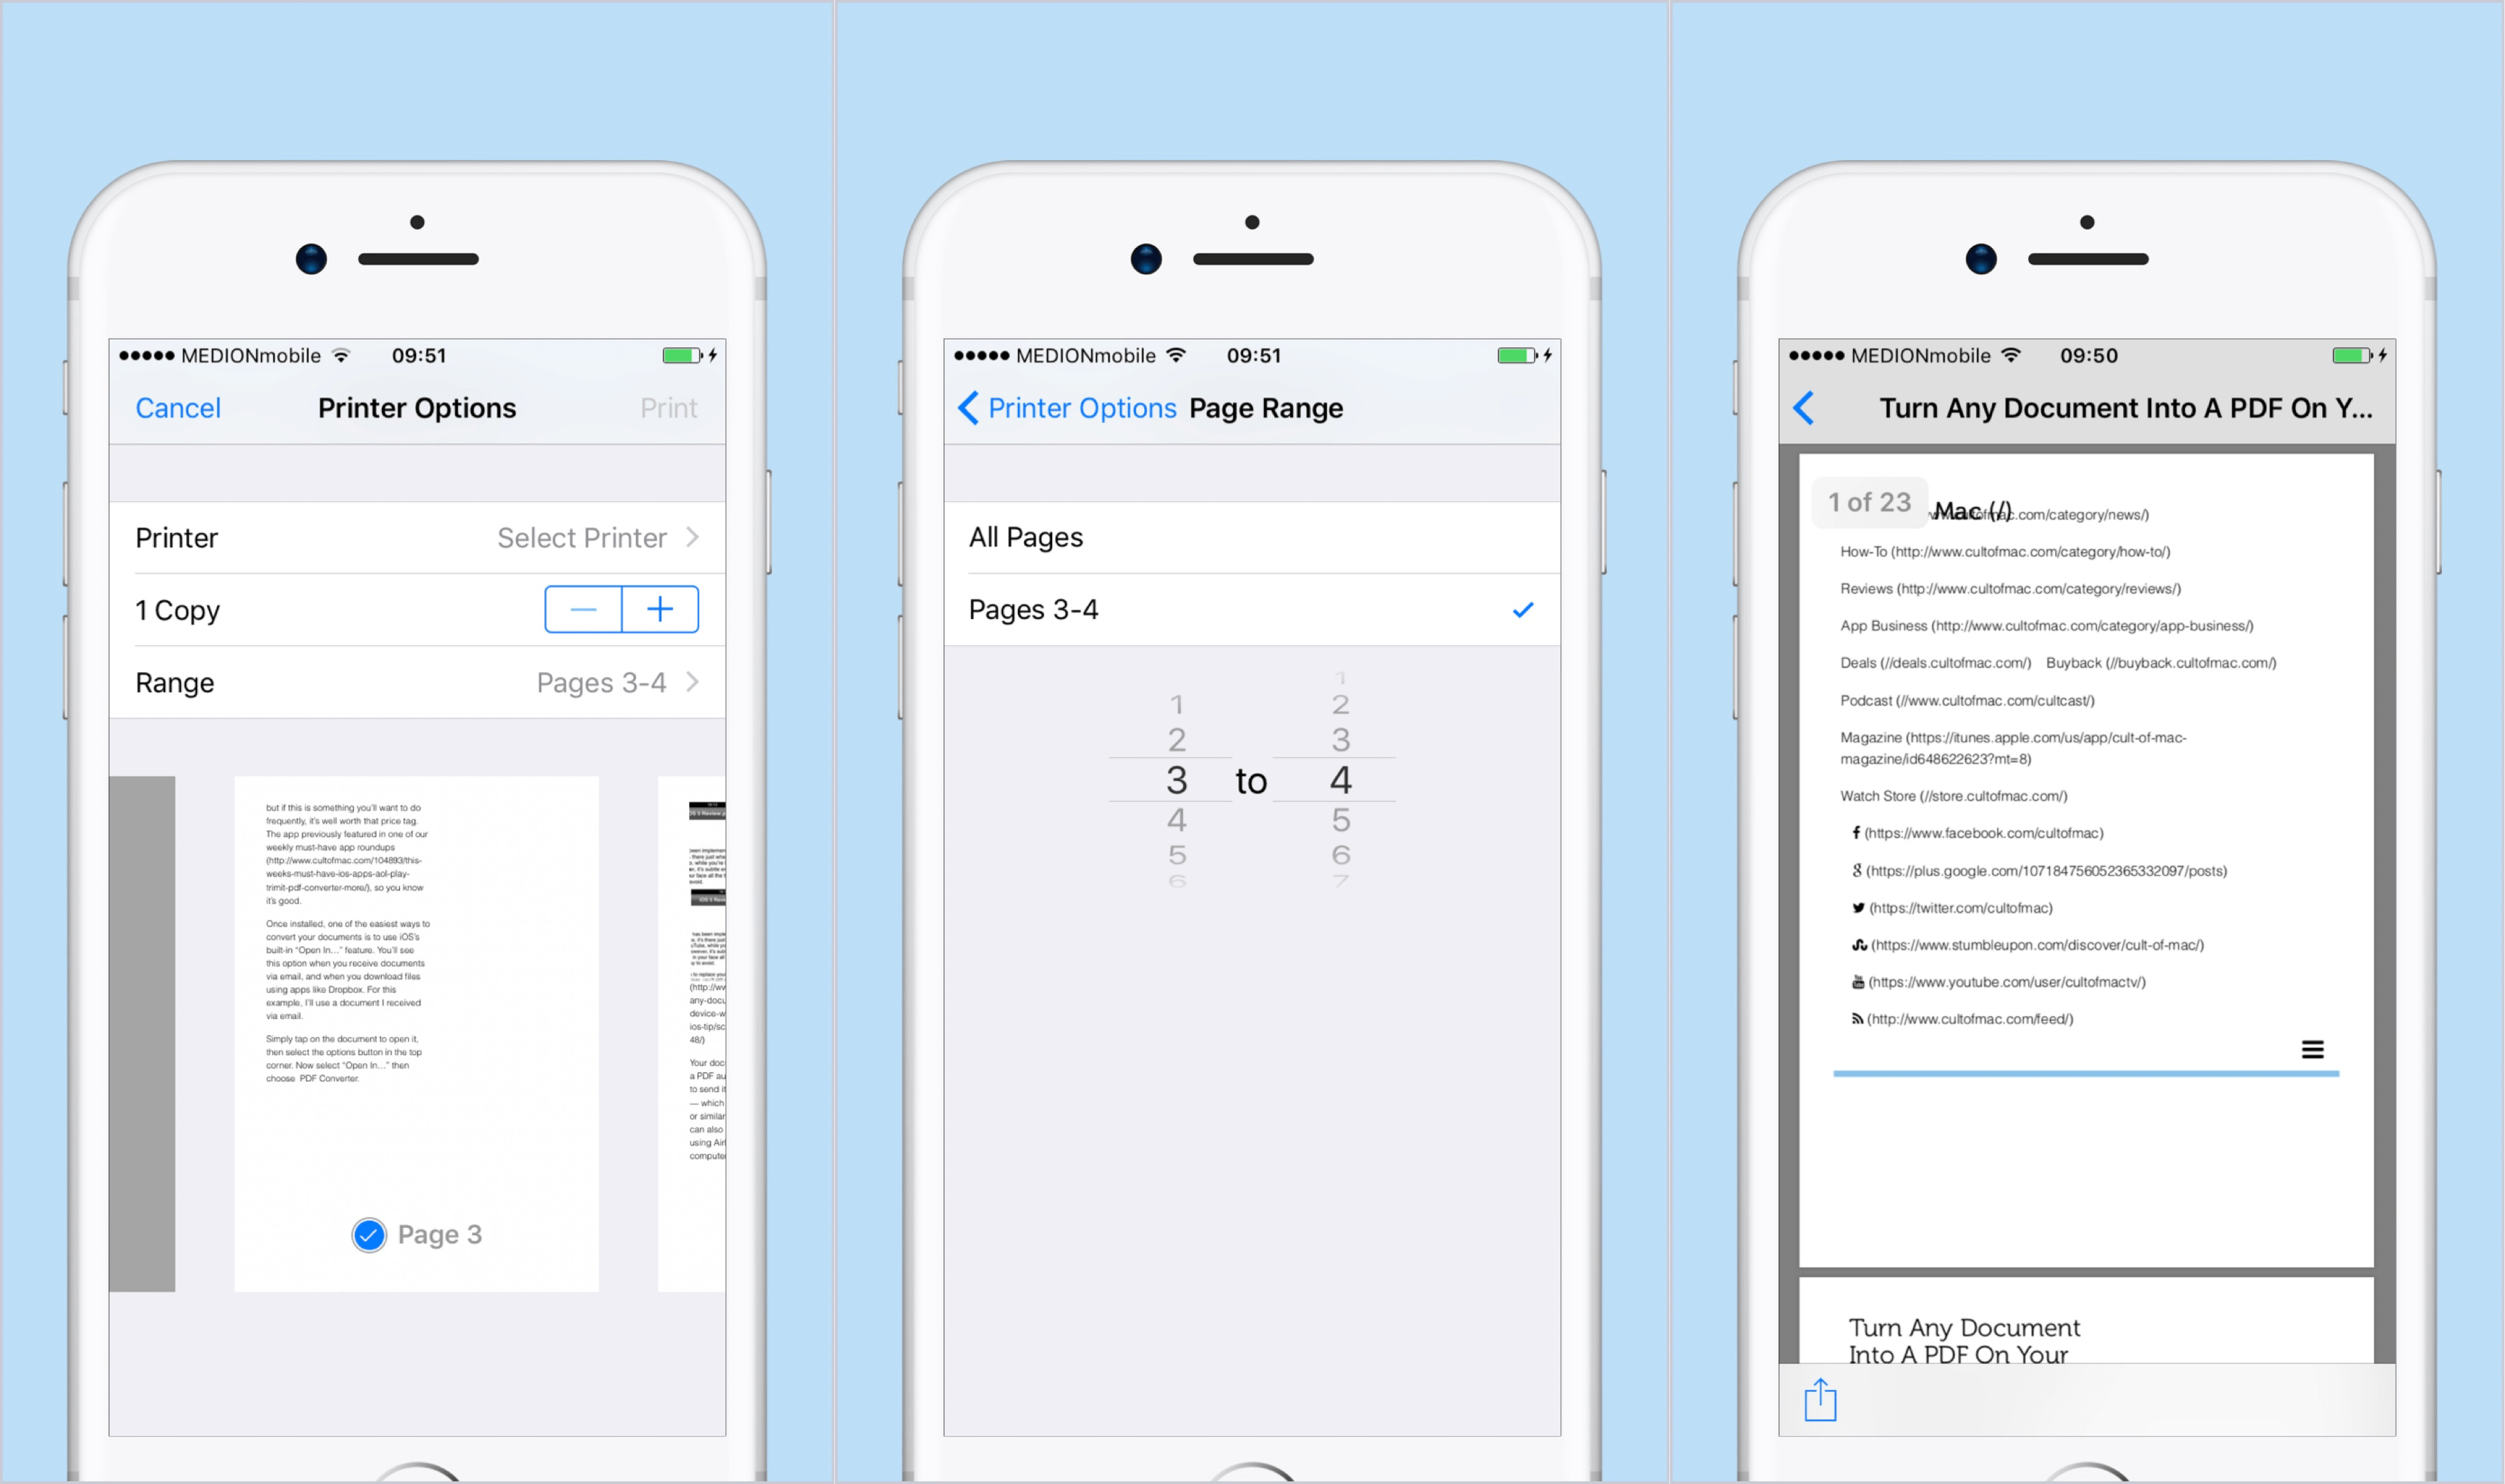 How to turn anything into a PDF on your iPhone or iPad